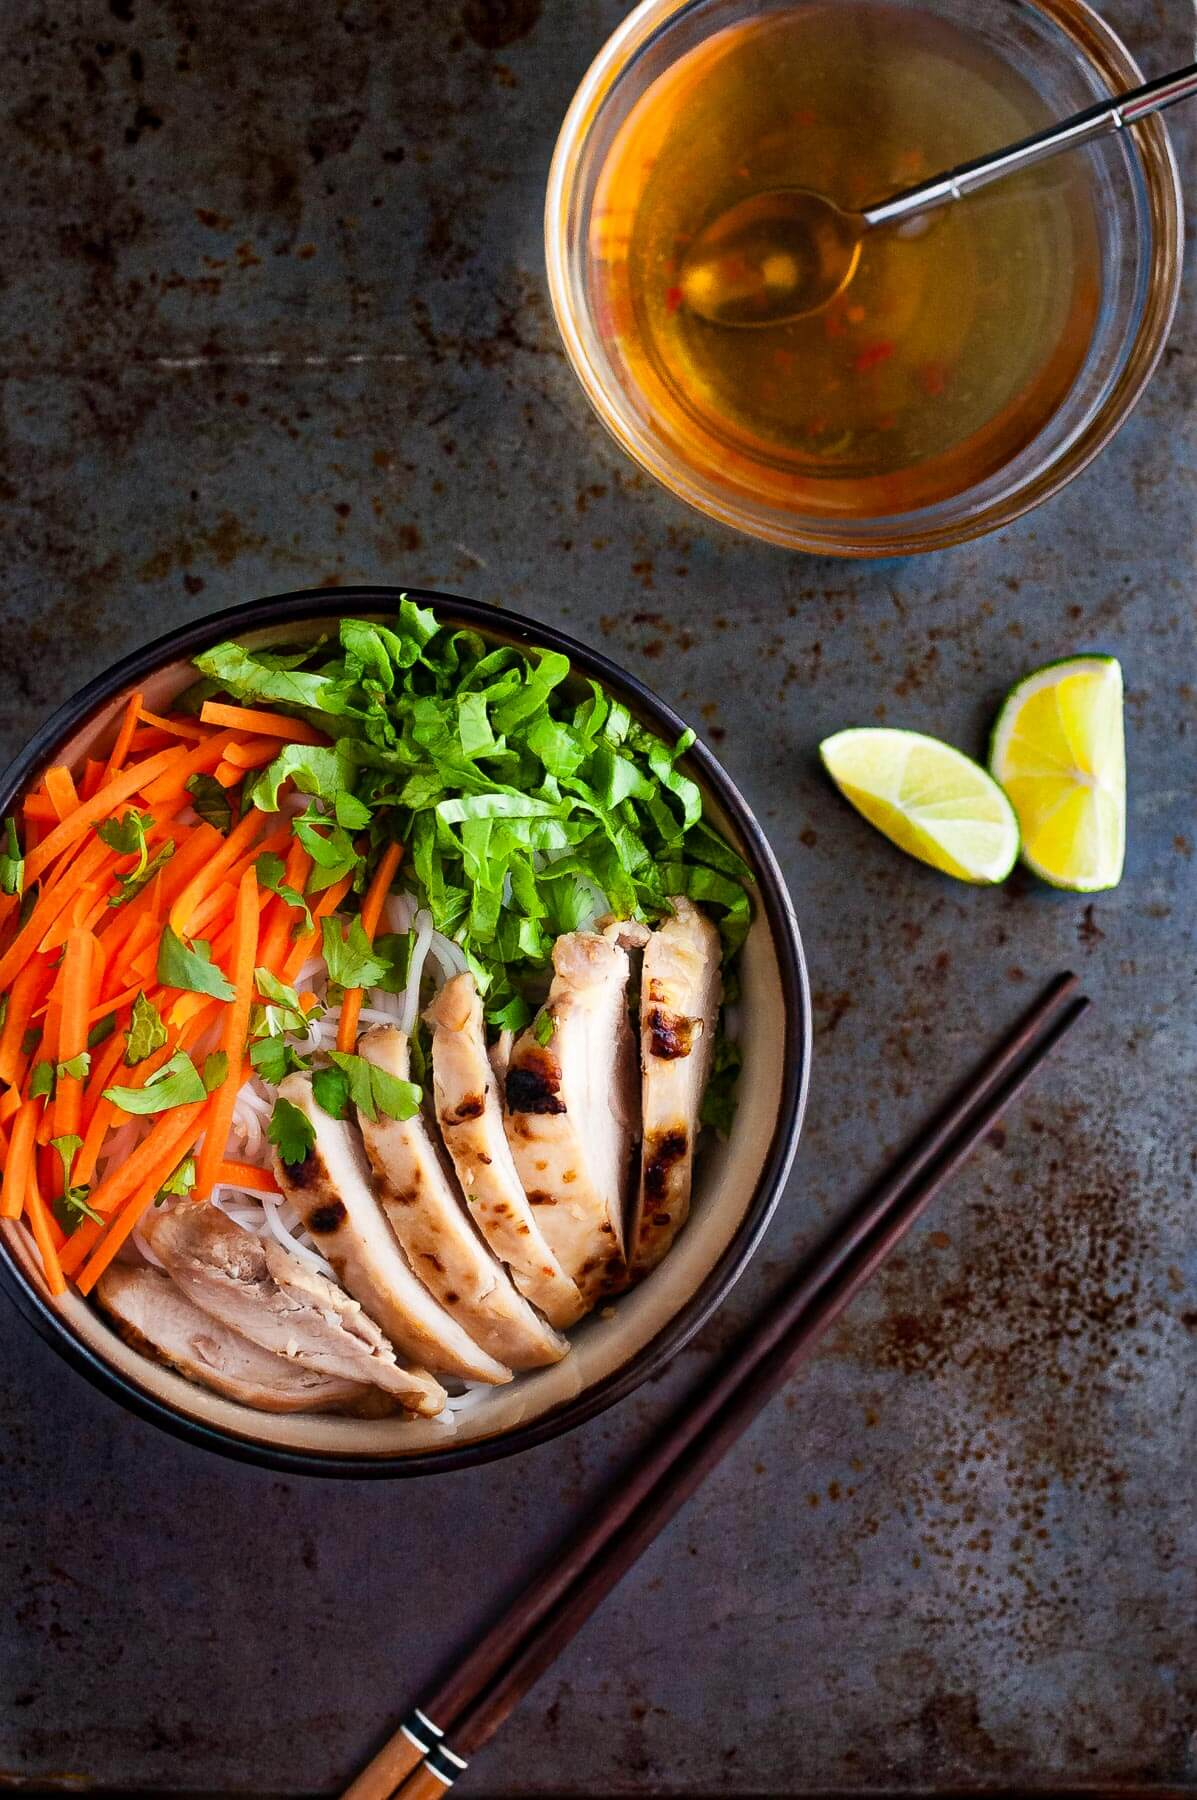 Overhead photo of Vietnamese noodles with grilled chicken in a bowl served with fresh lettuce, herbs, and fish sauce.